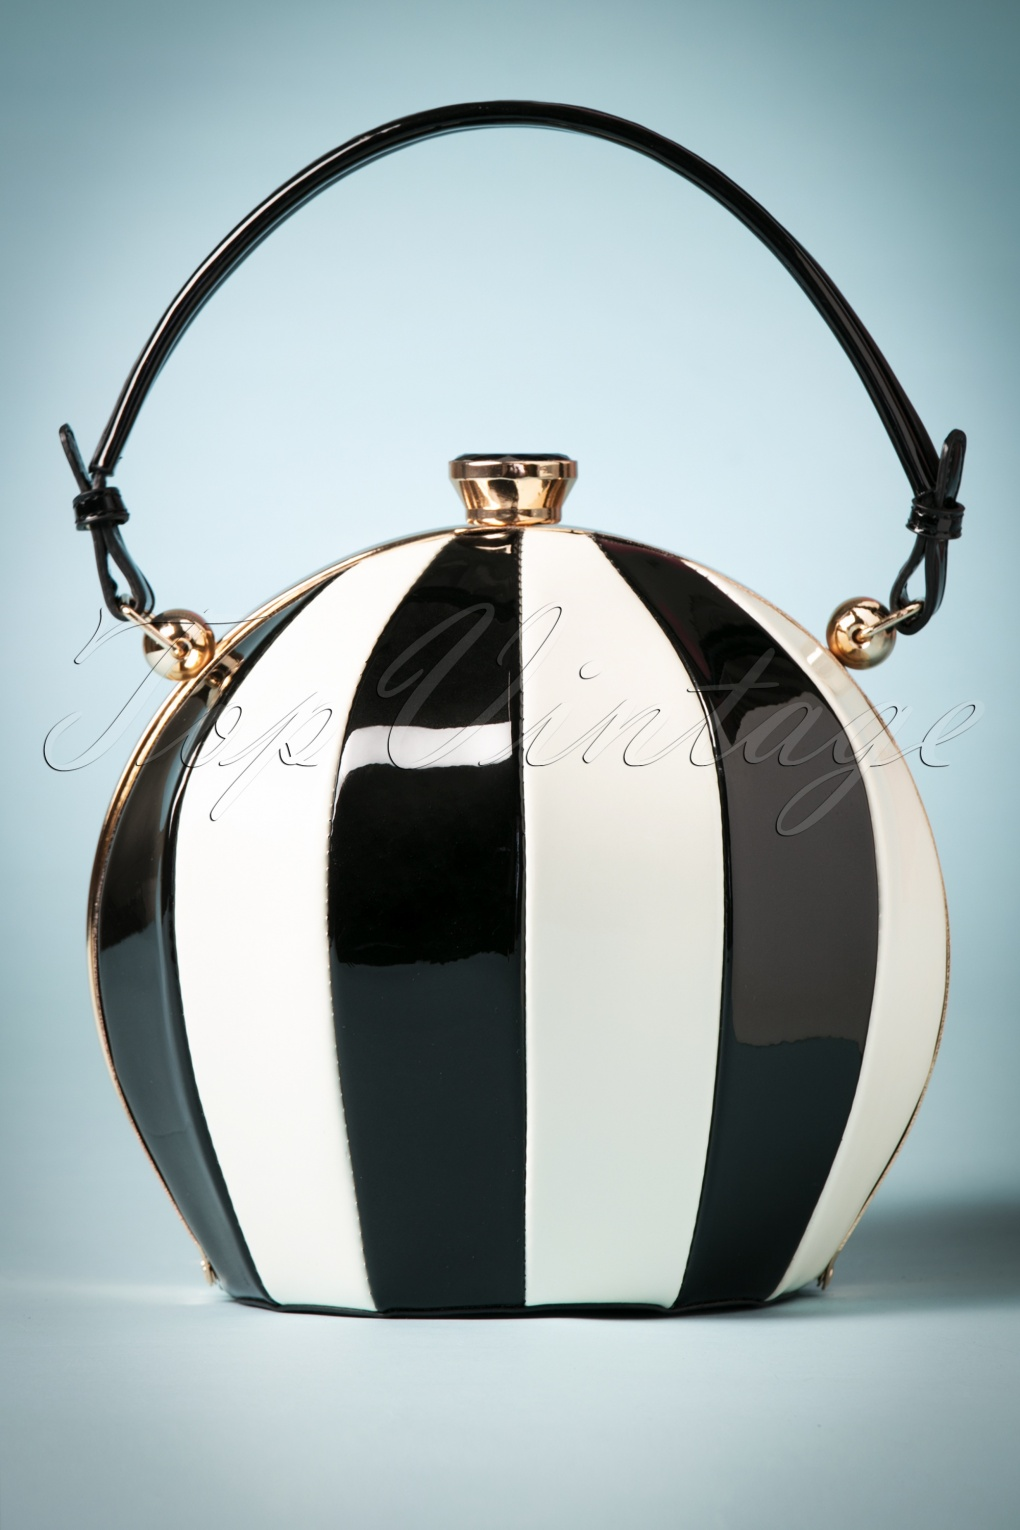 Vintage & Retro Handbags, Purses, Wallets, Bags 50s Vintage Fantasy Balloon Bag in Black and White �48.53 AT vintagedancer.com